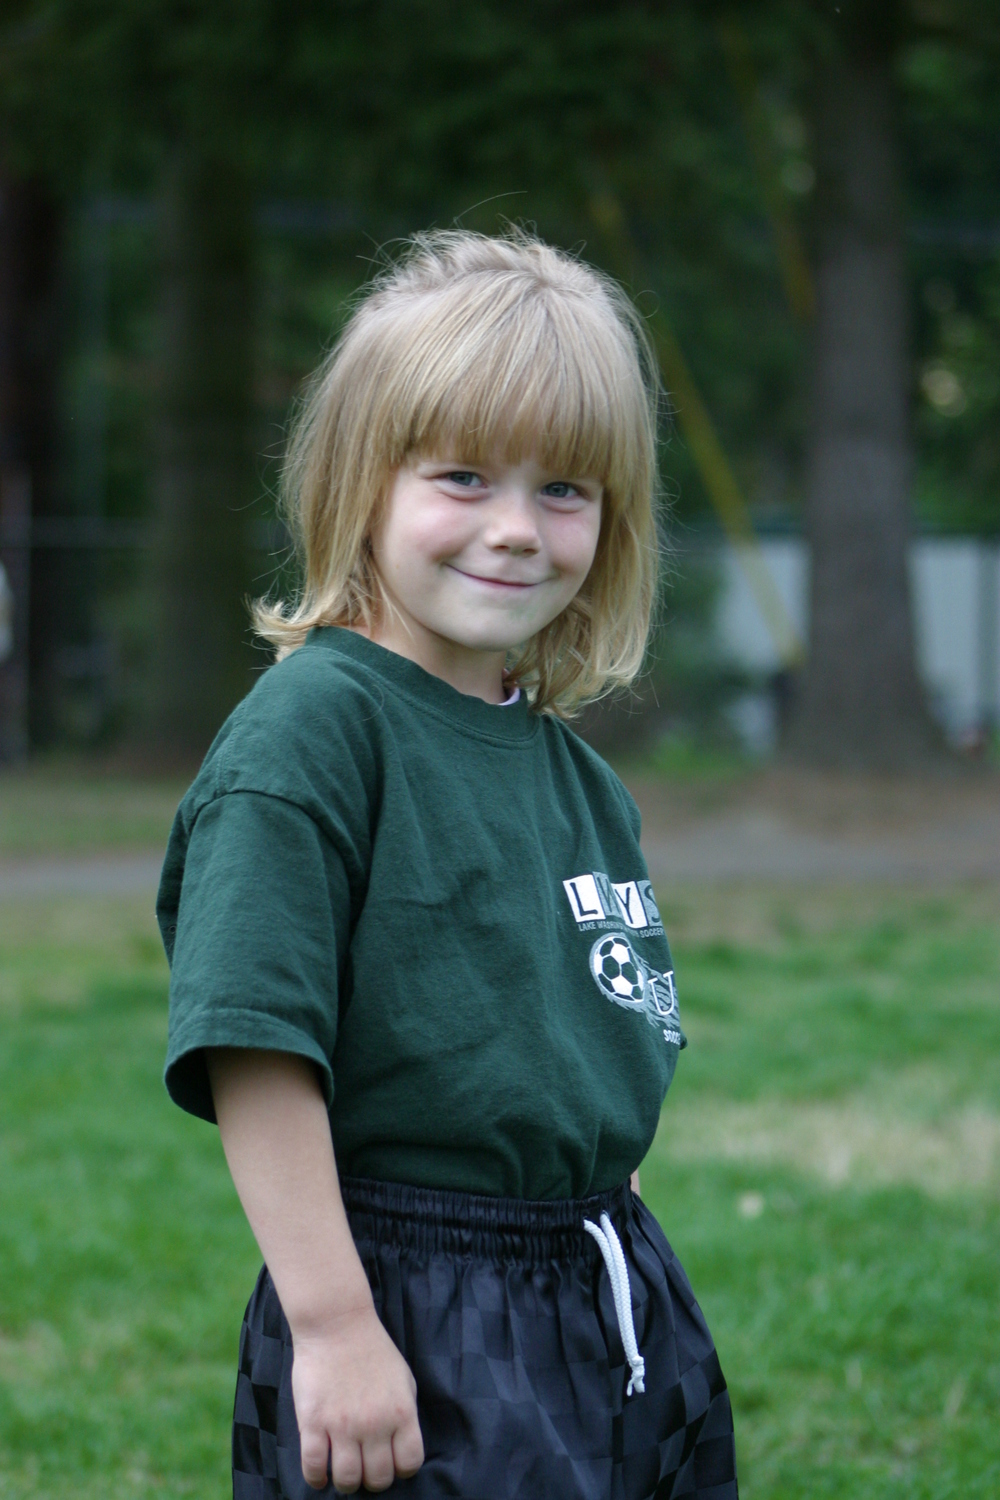 And I always had the cutiest soccer players, Jessie, 2005